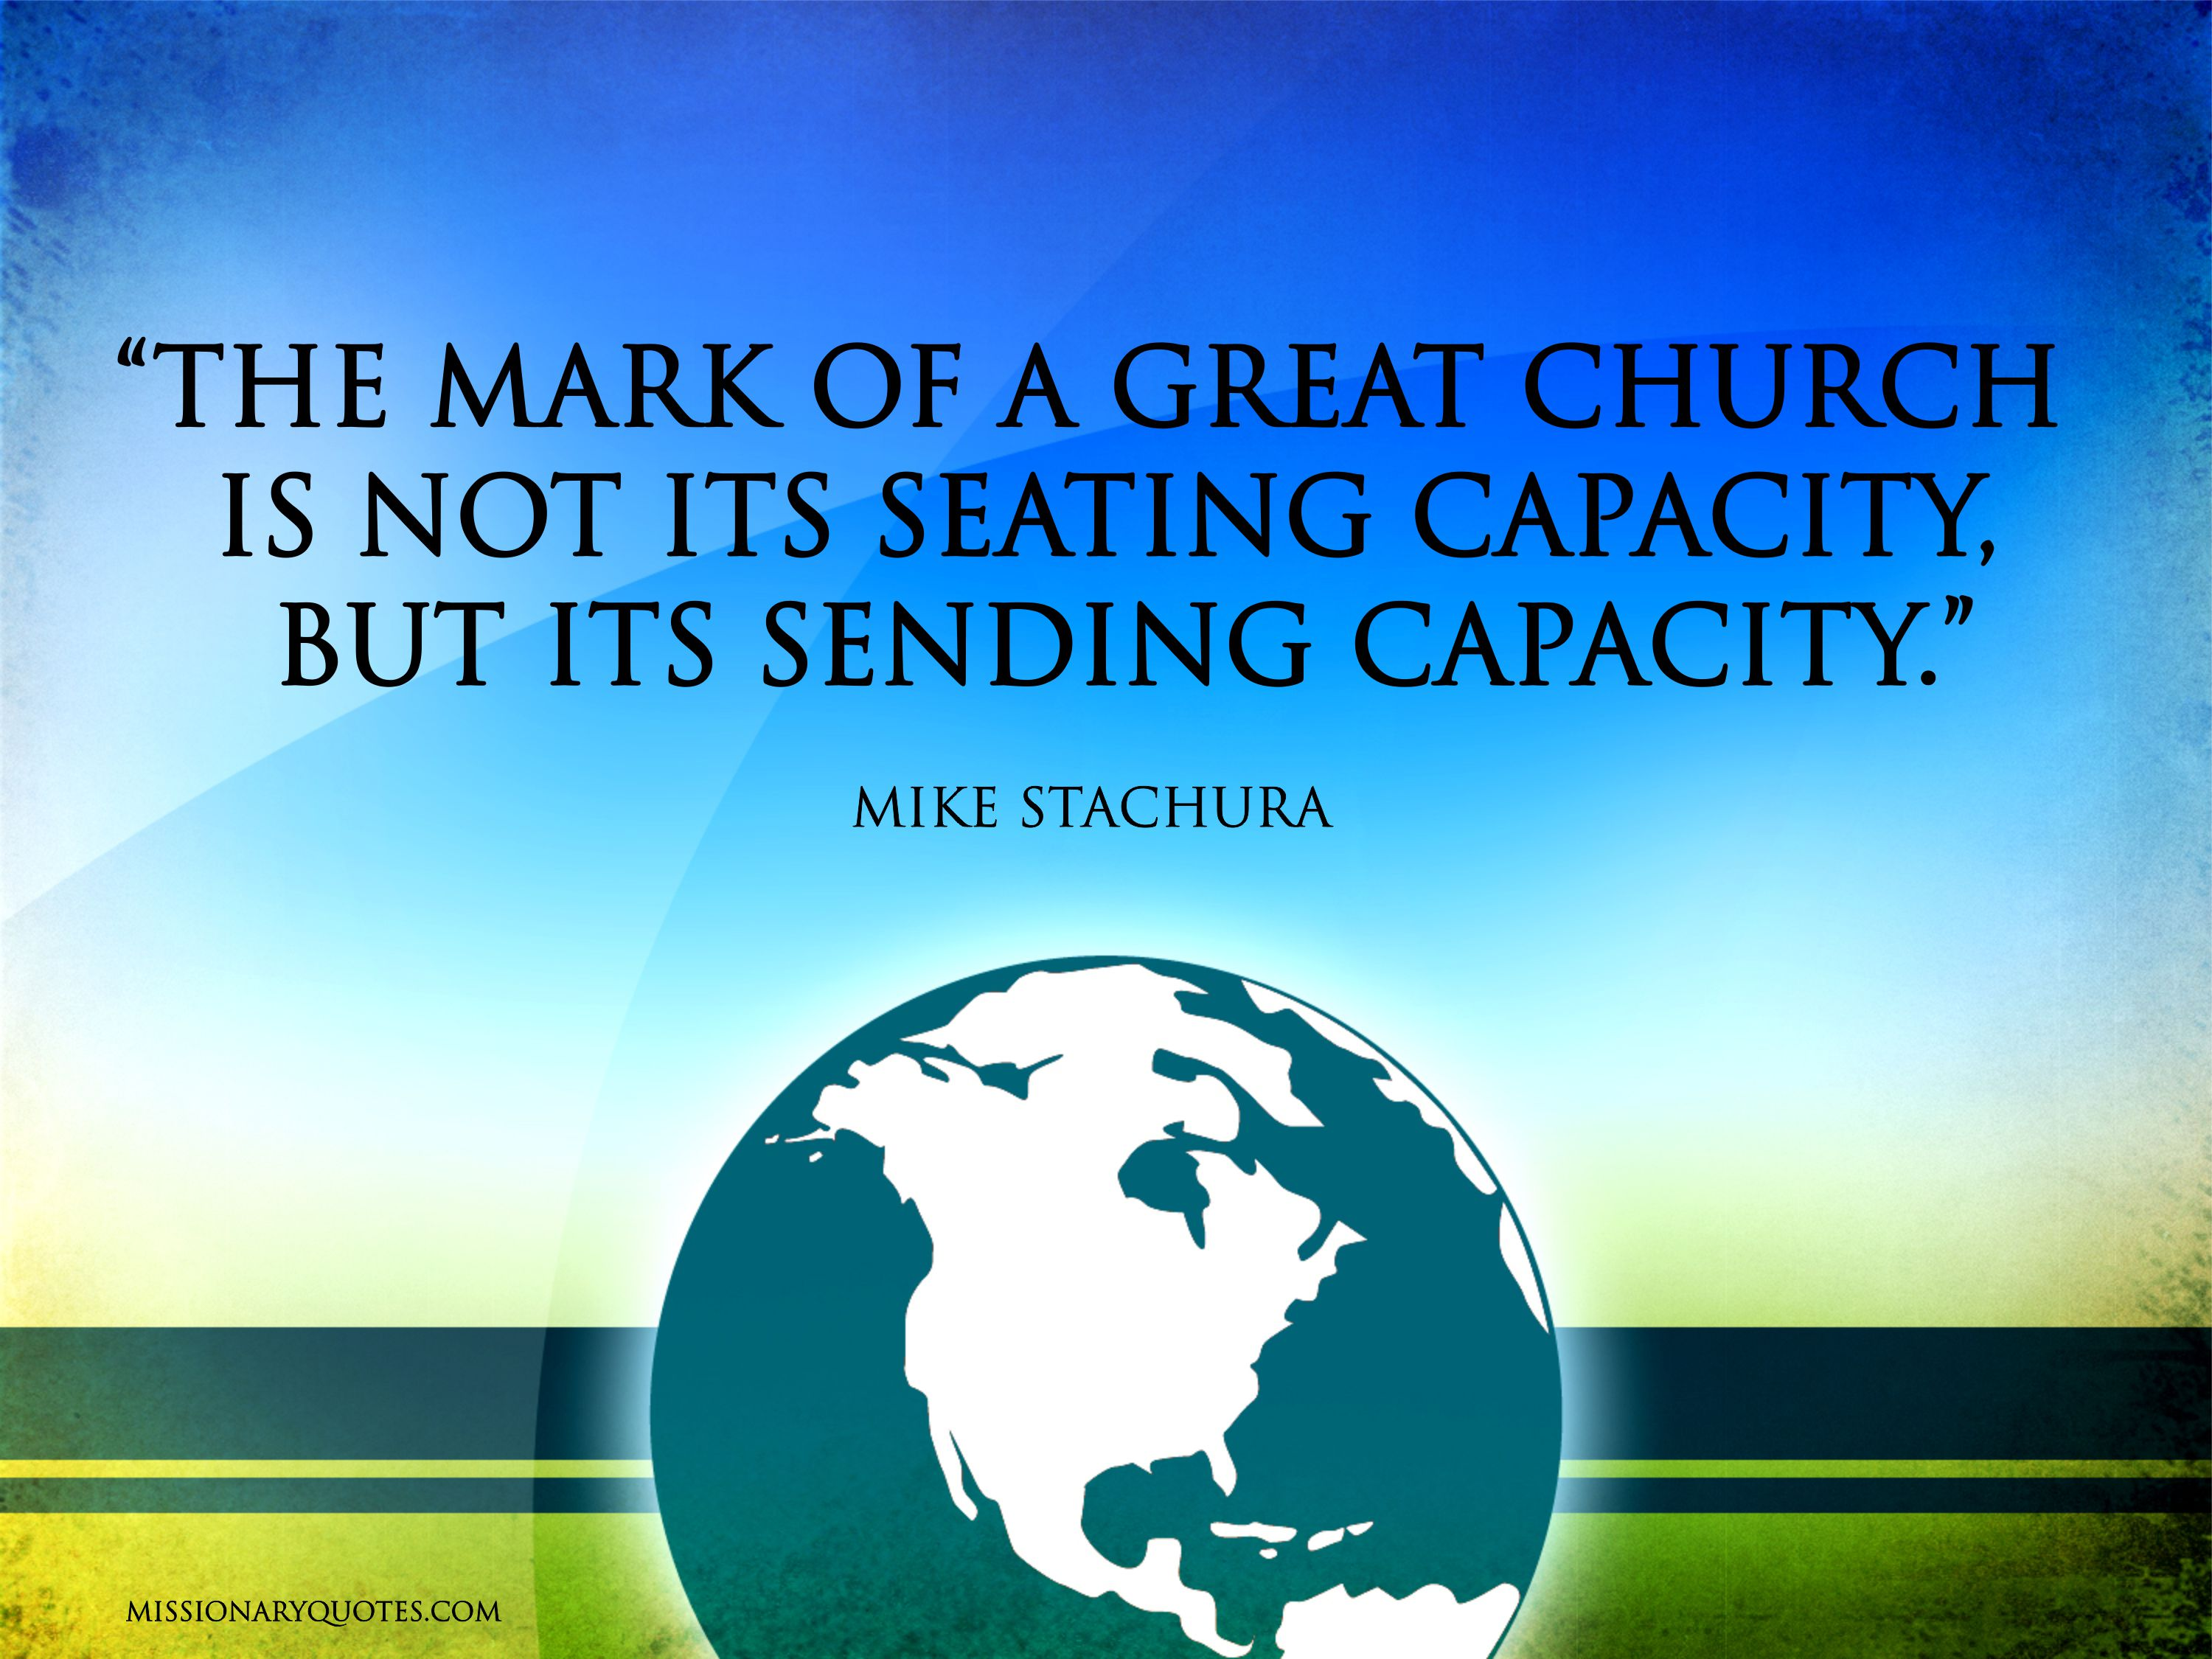 The Mark of a Great Church - Mark Stachura